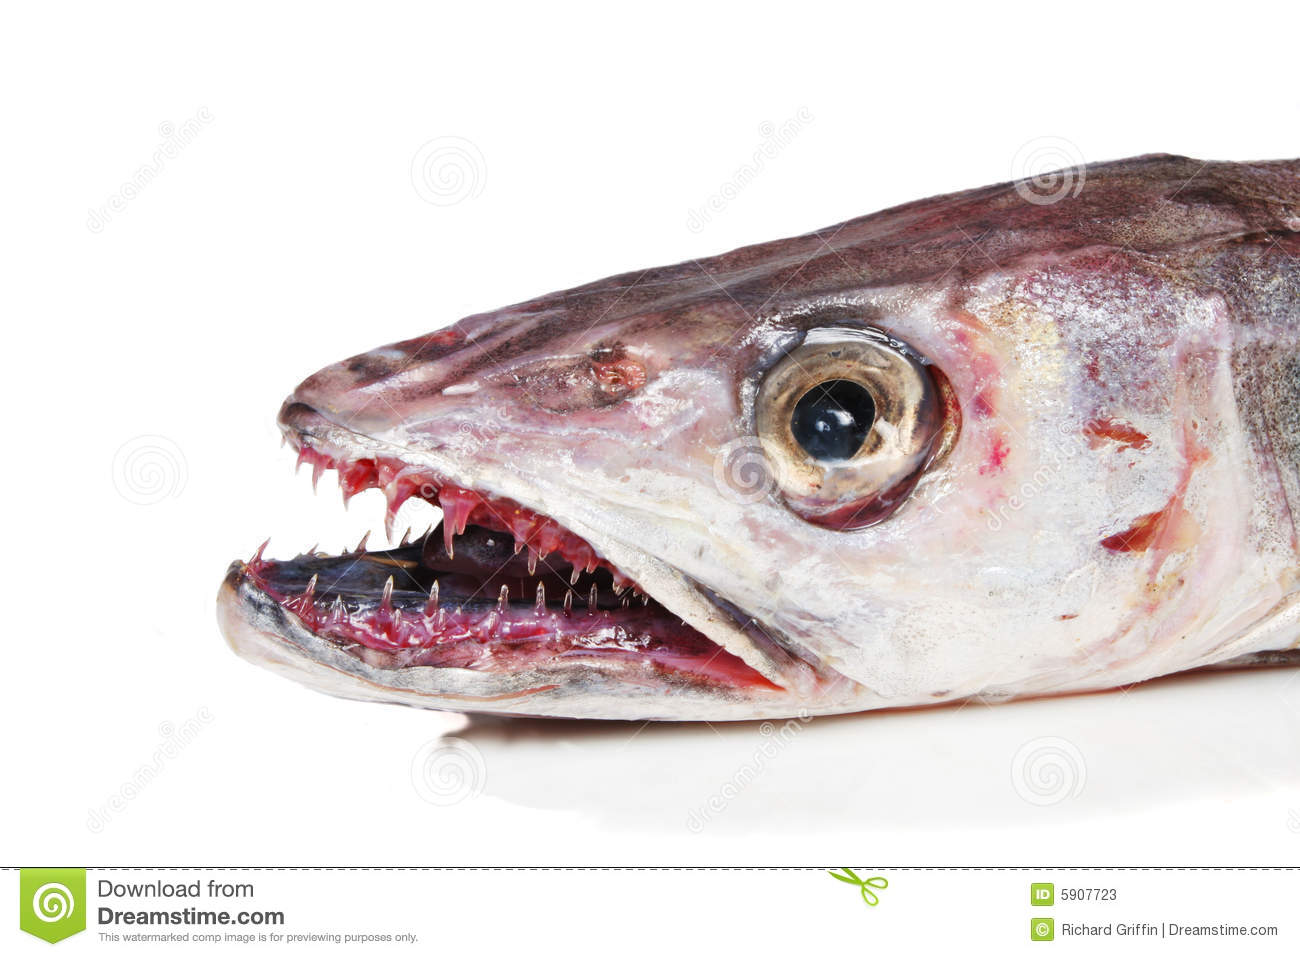 Closeup of head mouth and teeth of a Hake fish.